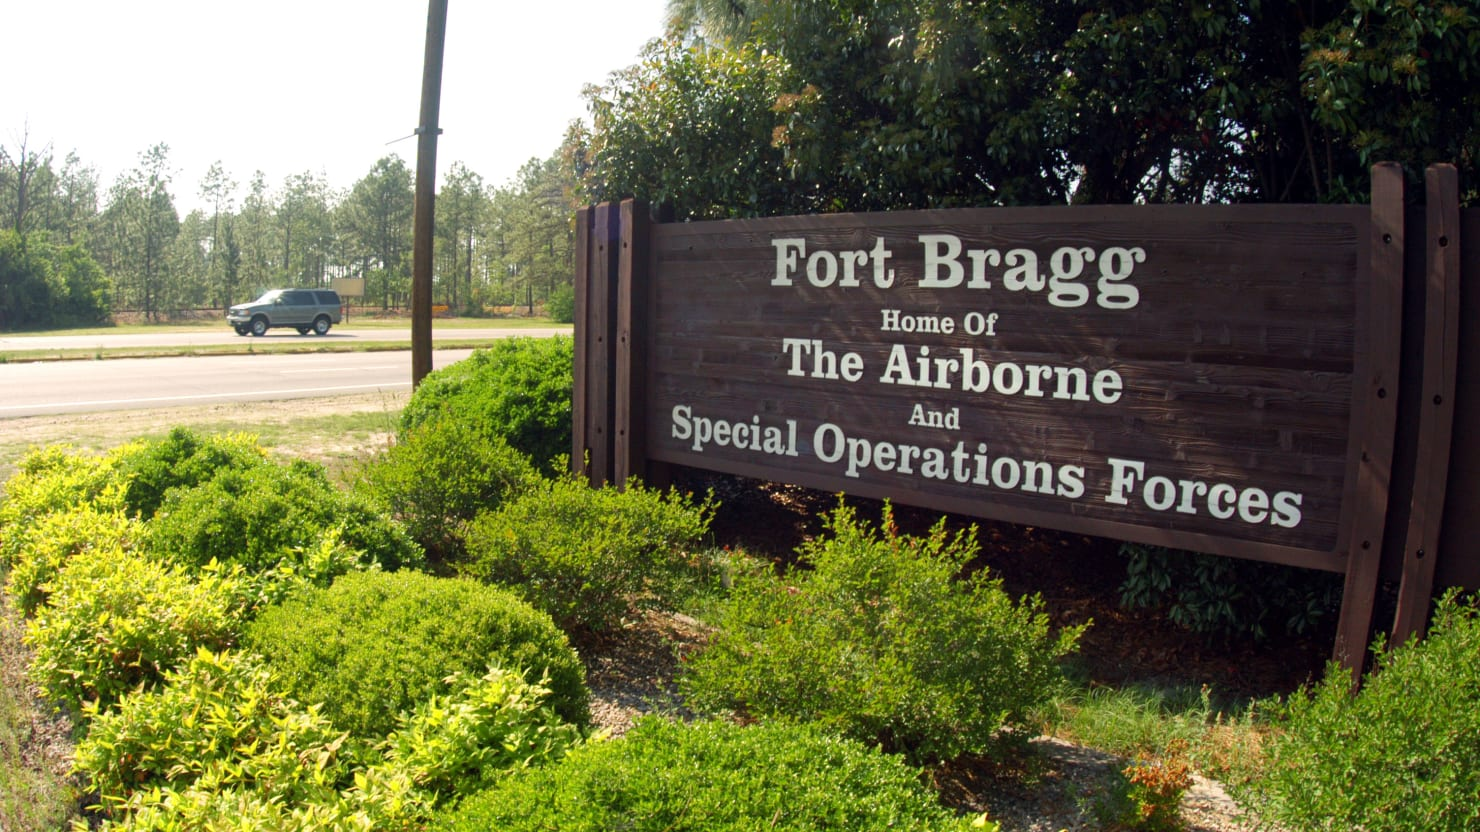 Pubic Hair-Enthused Fort Bragg Twitter Account Gets Very Horny